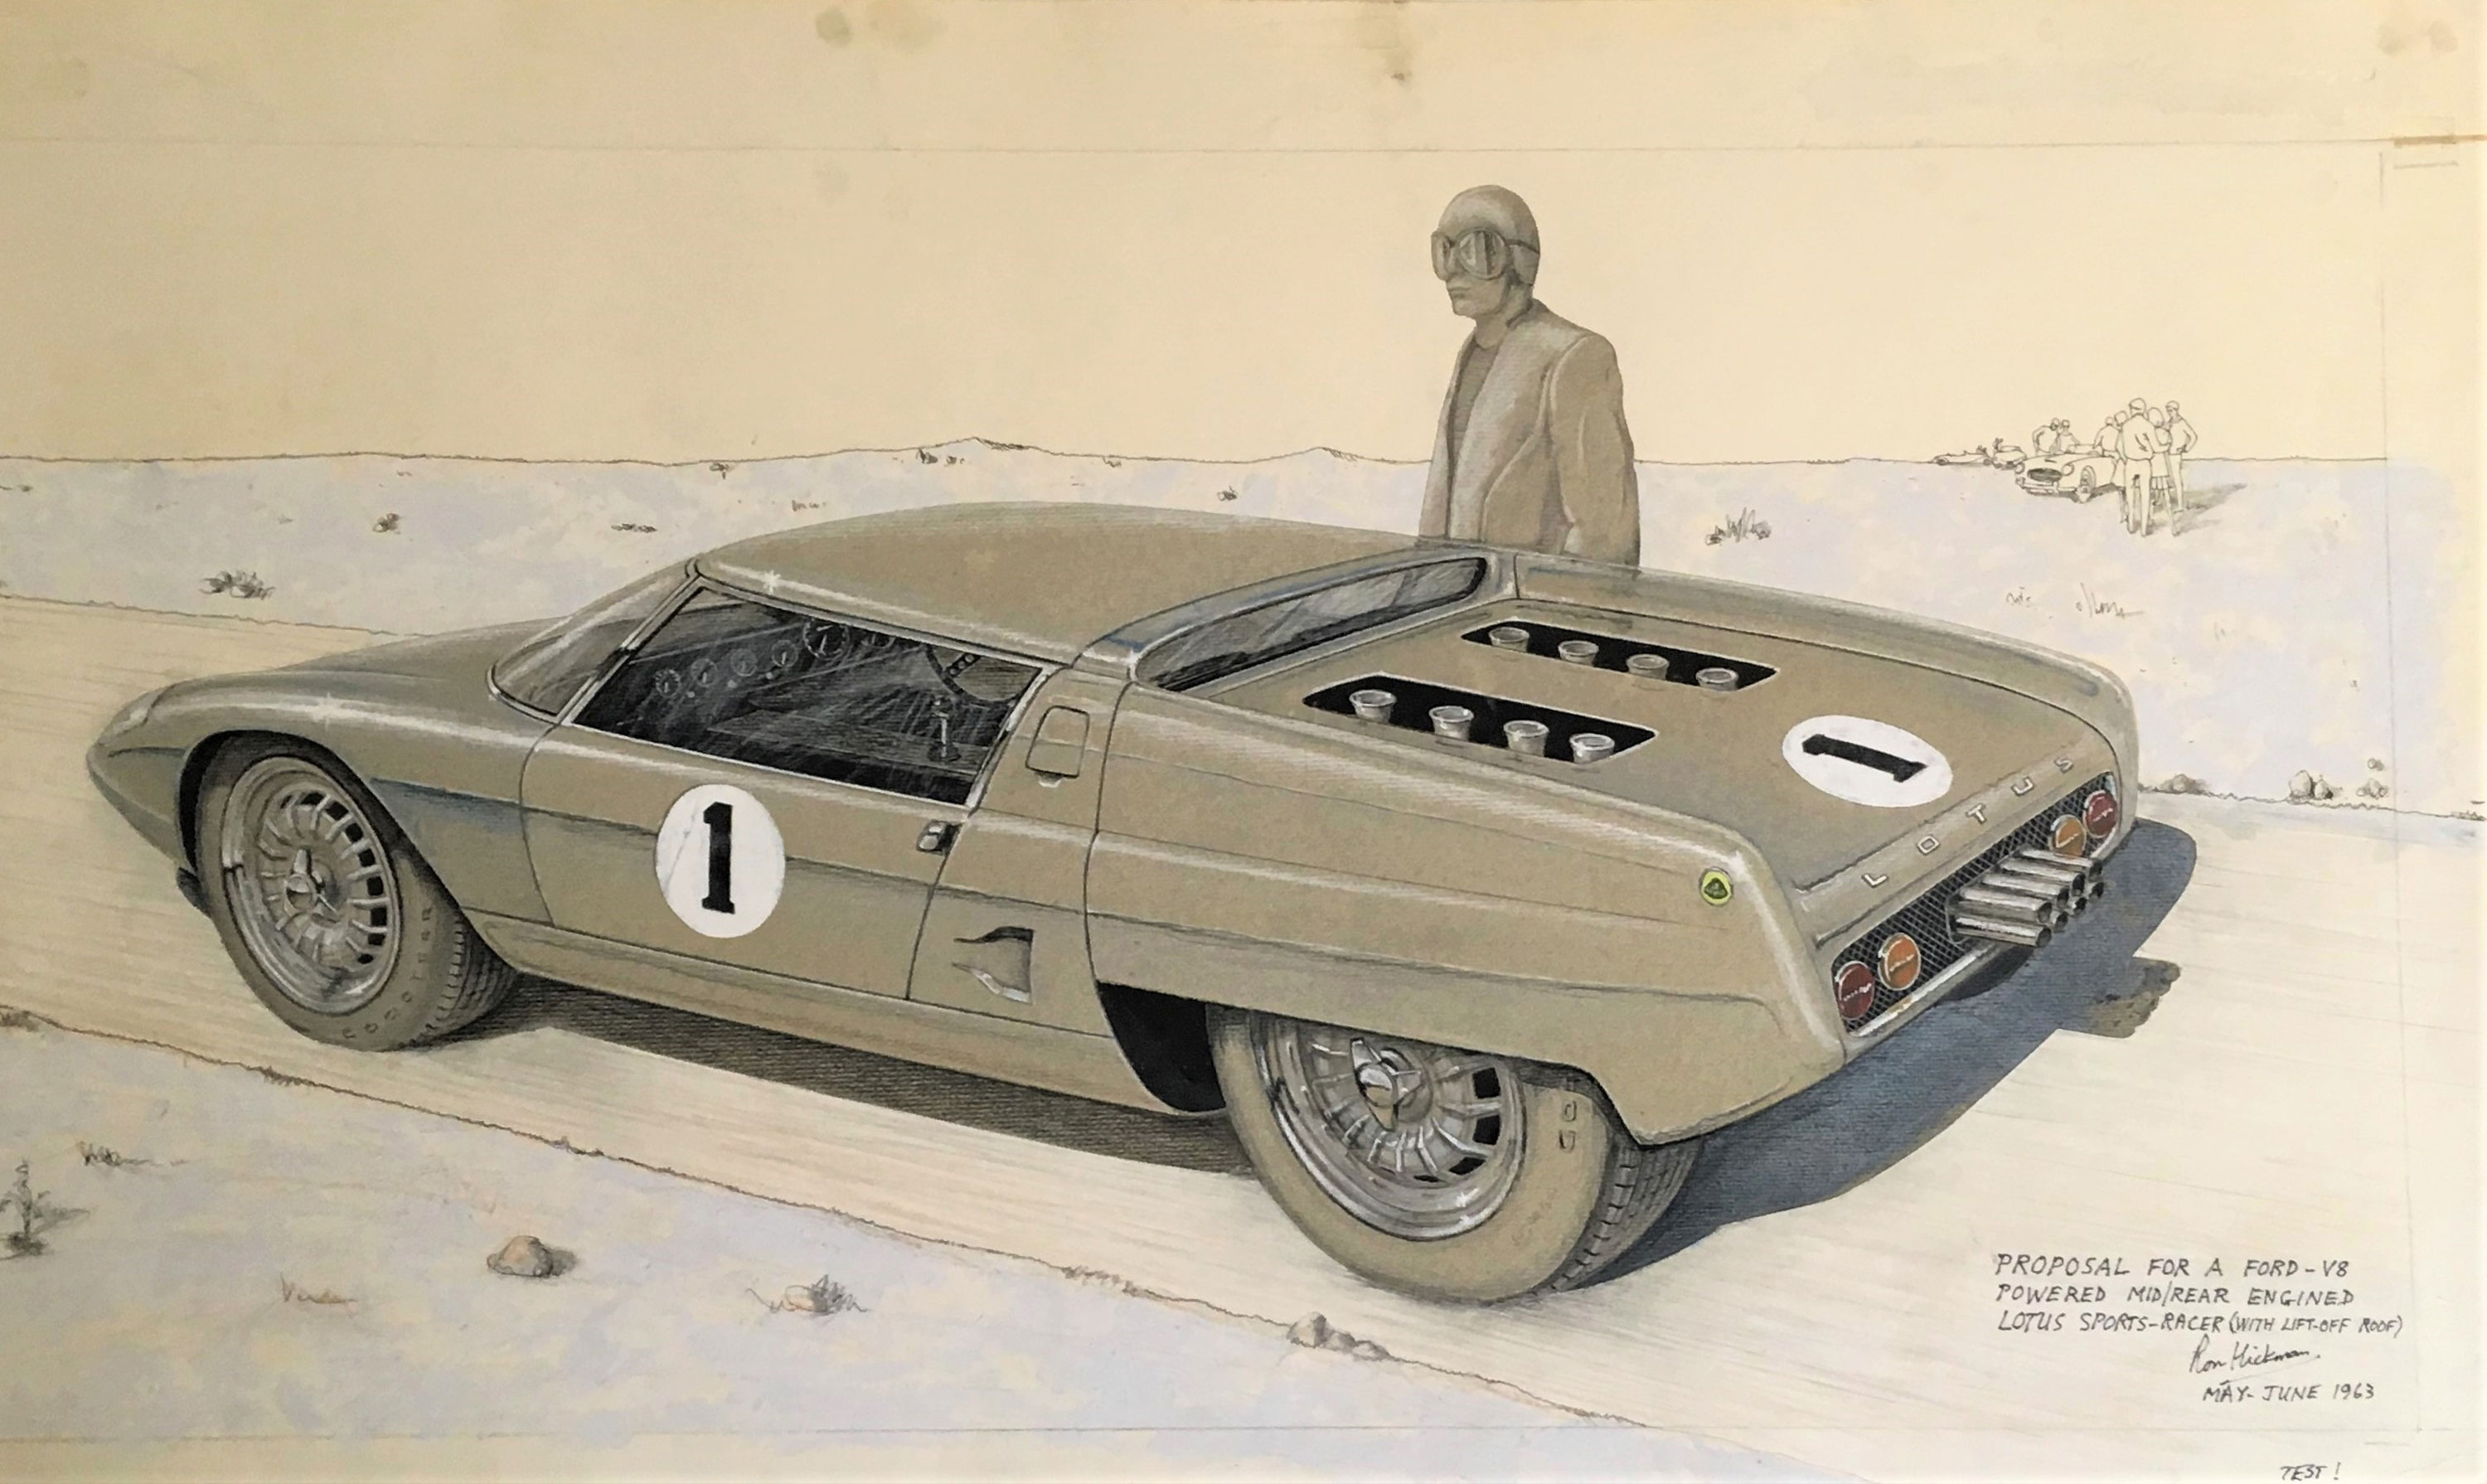 Design drawing of the Lotus Europa